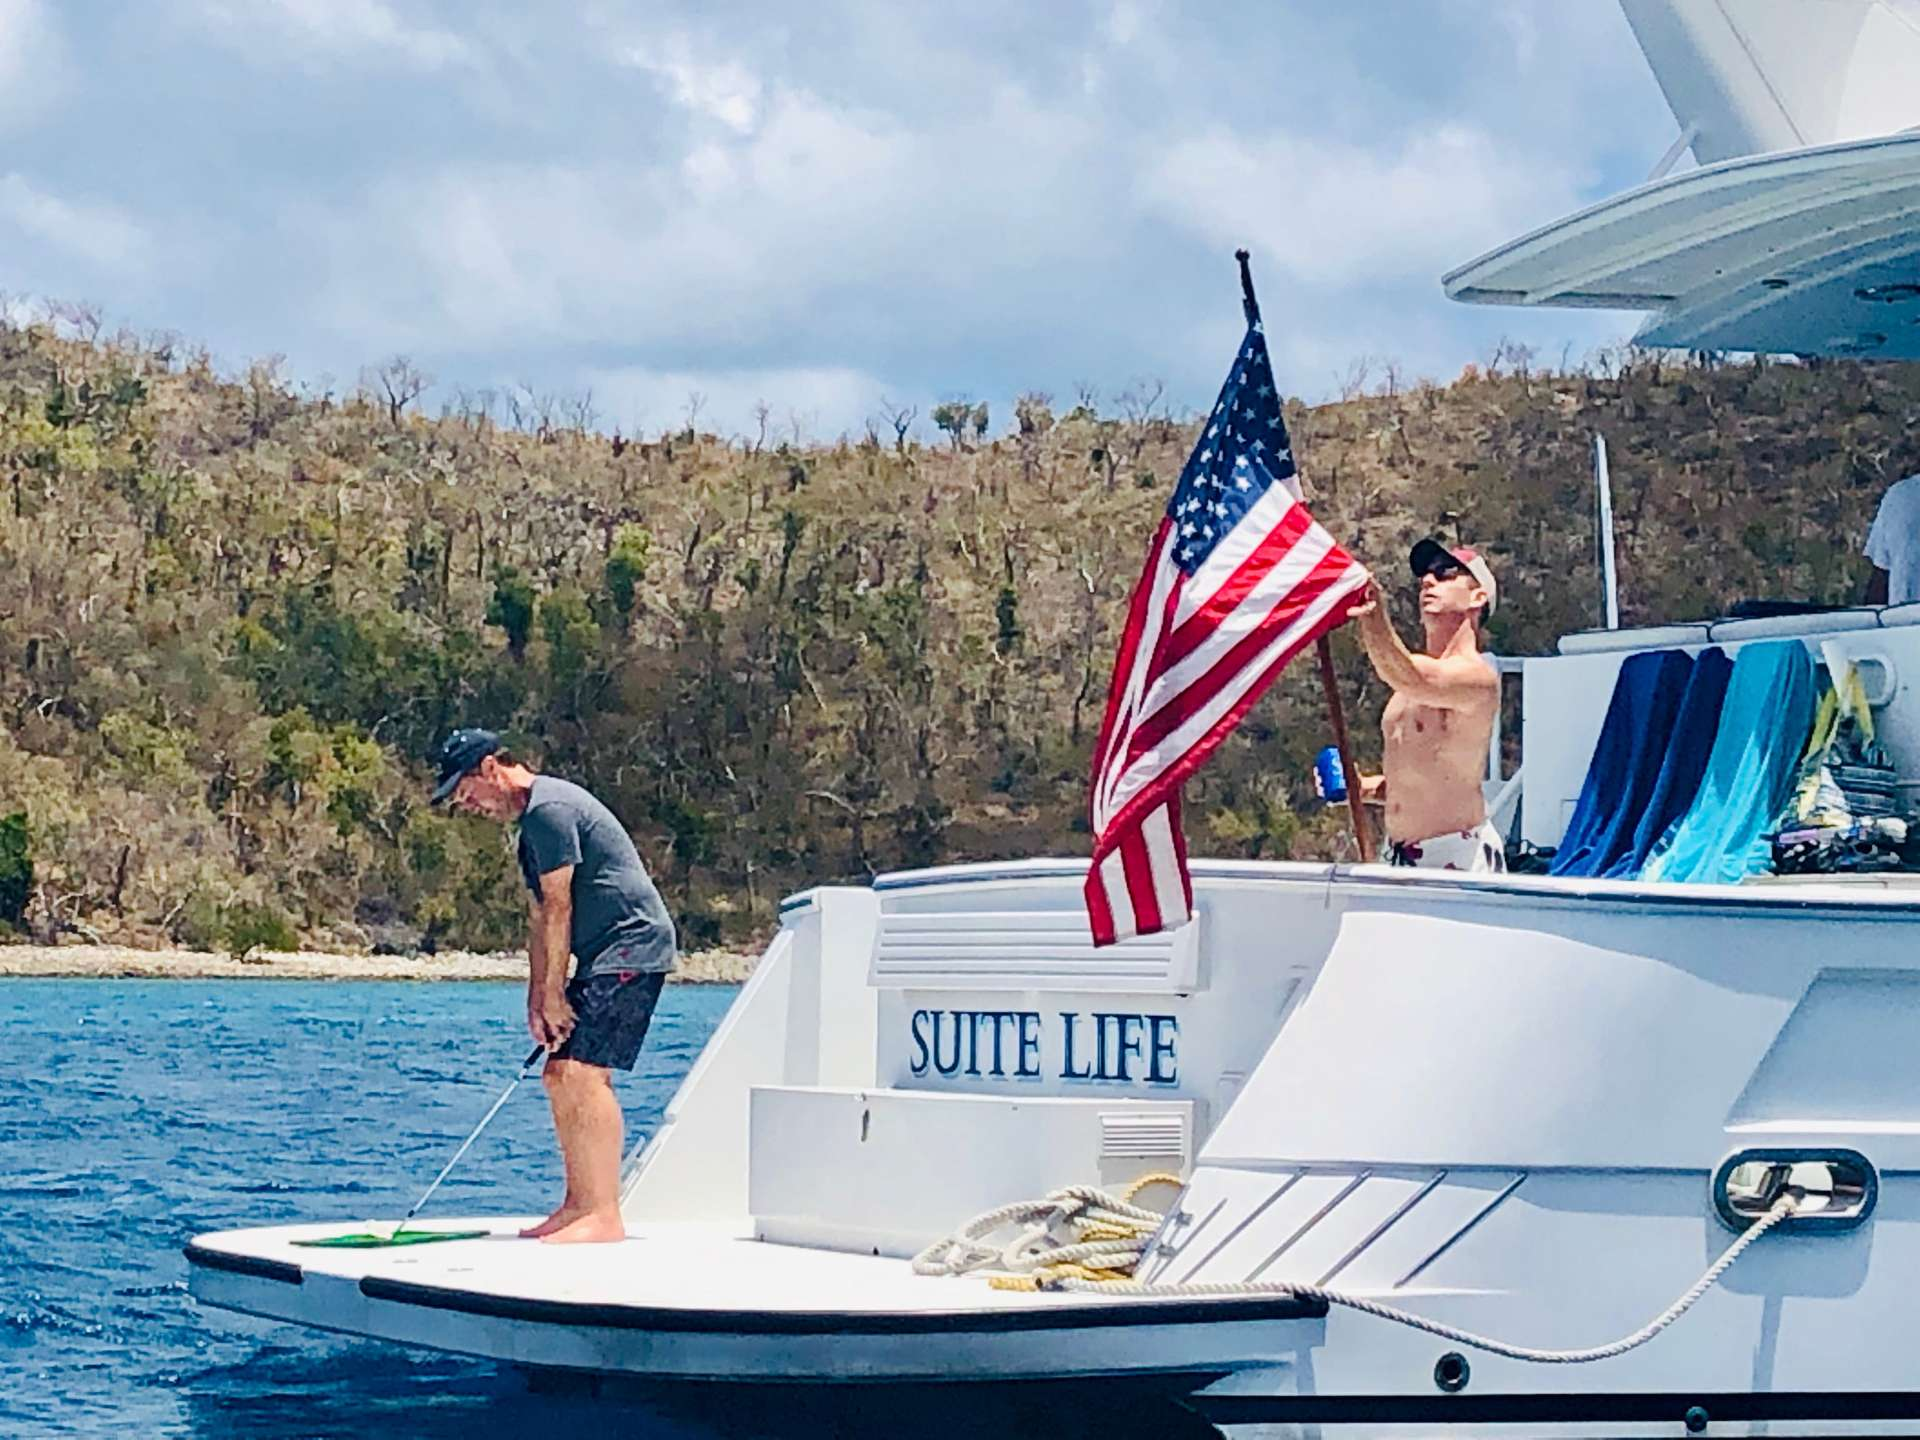 Image of SUITE LIFE yacht #19